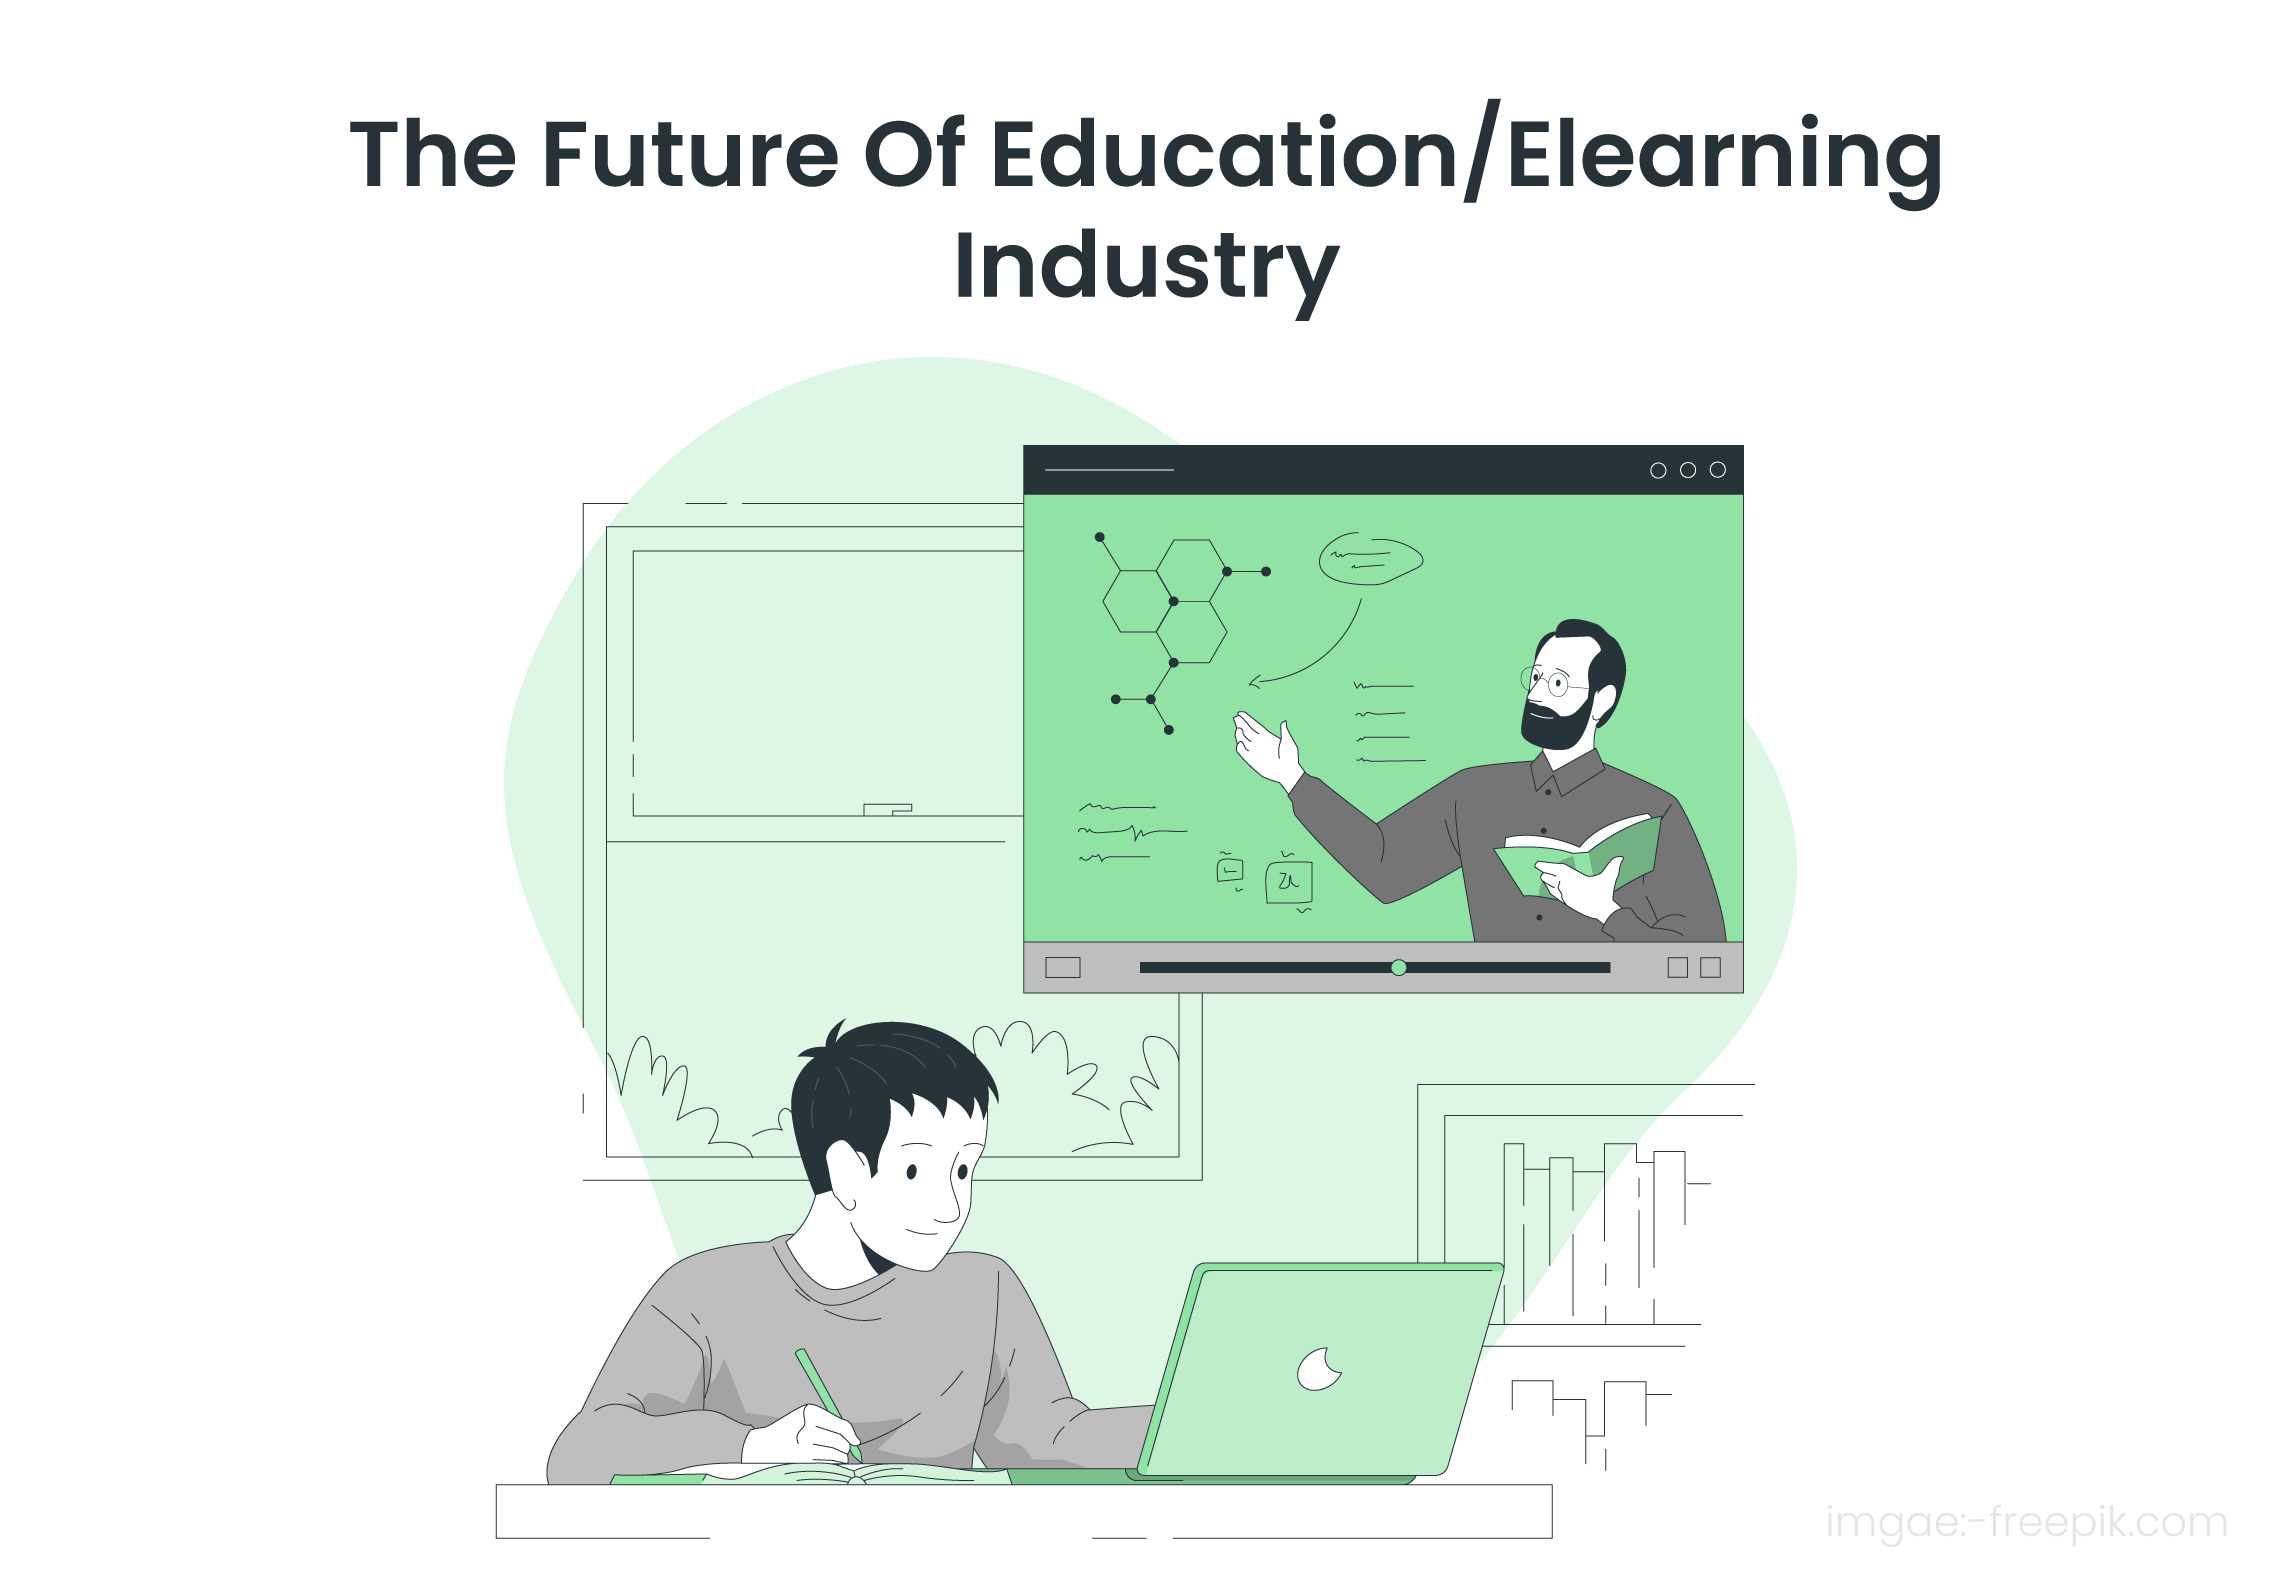 The Future Of Education/Elearning Industry 1